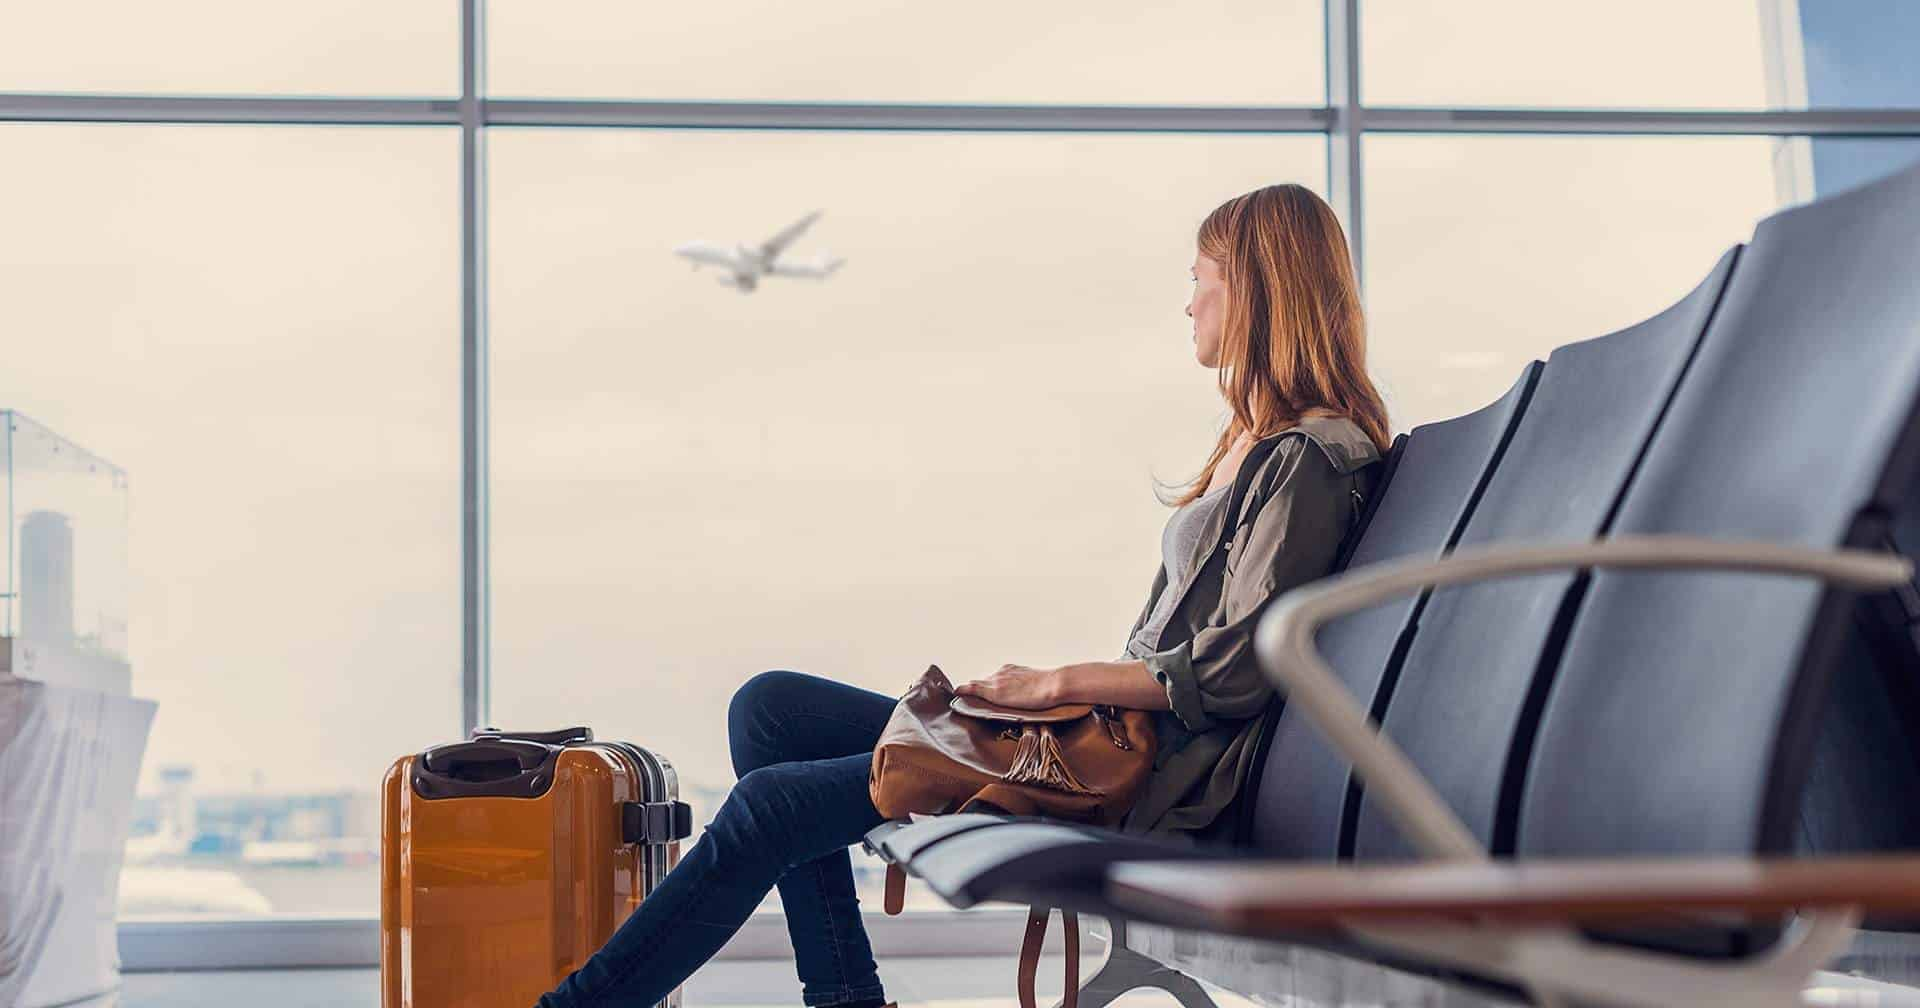 Flight Cancelled: What to Do When Your Flight Is Cancelled?